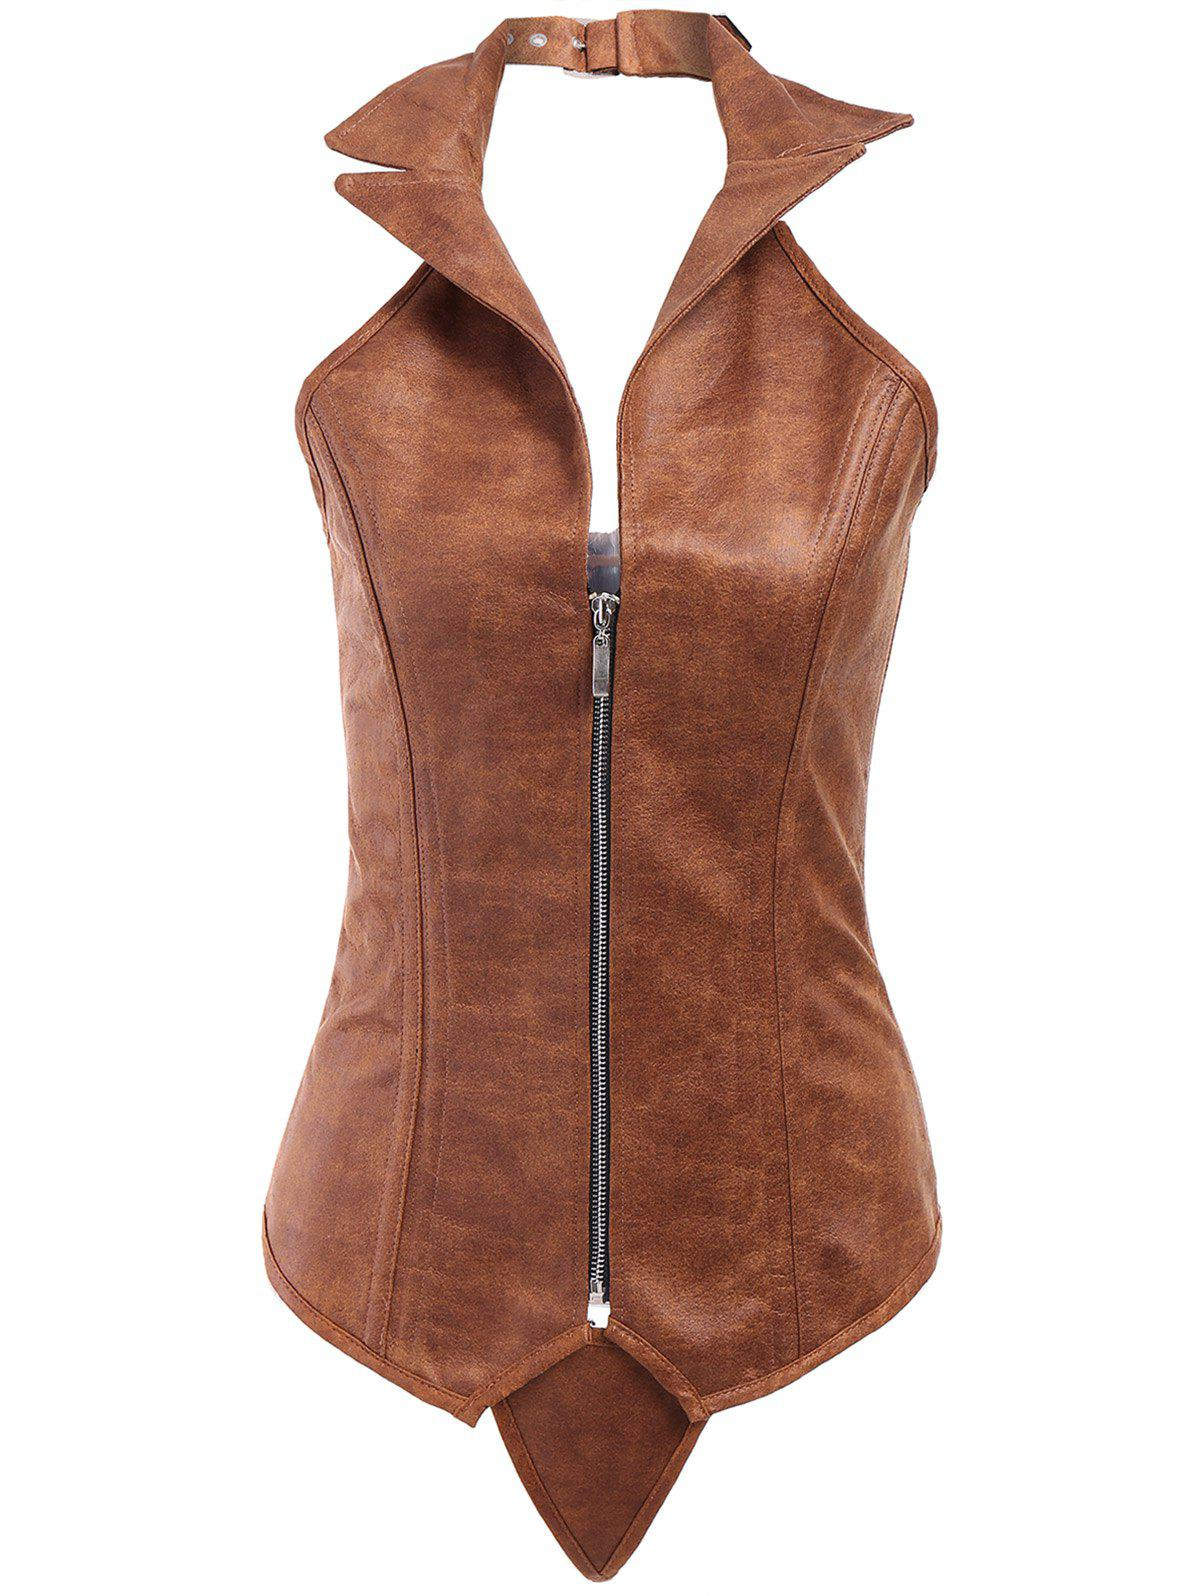 Sexy PU Leather Turn-Down Collar Corset For Women - KHAKI S